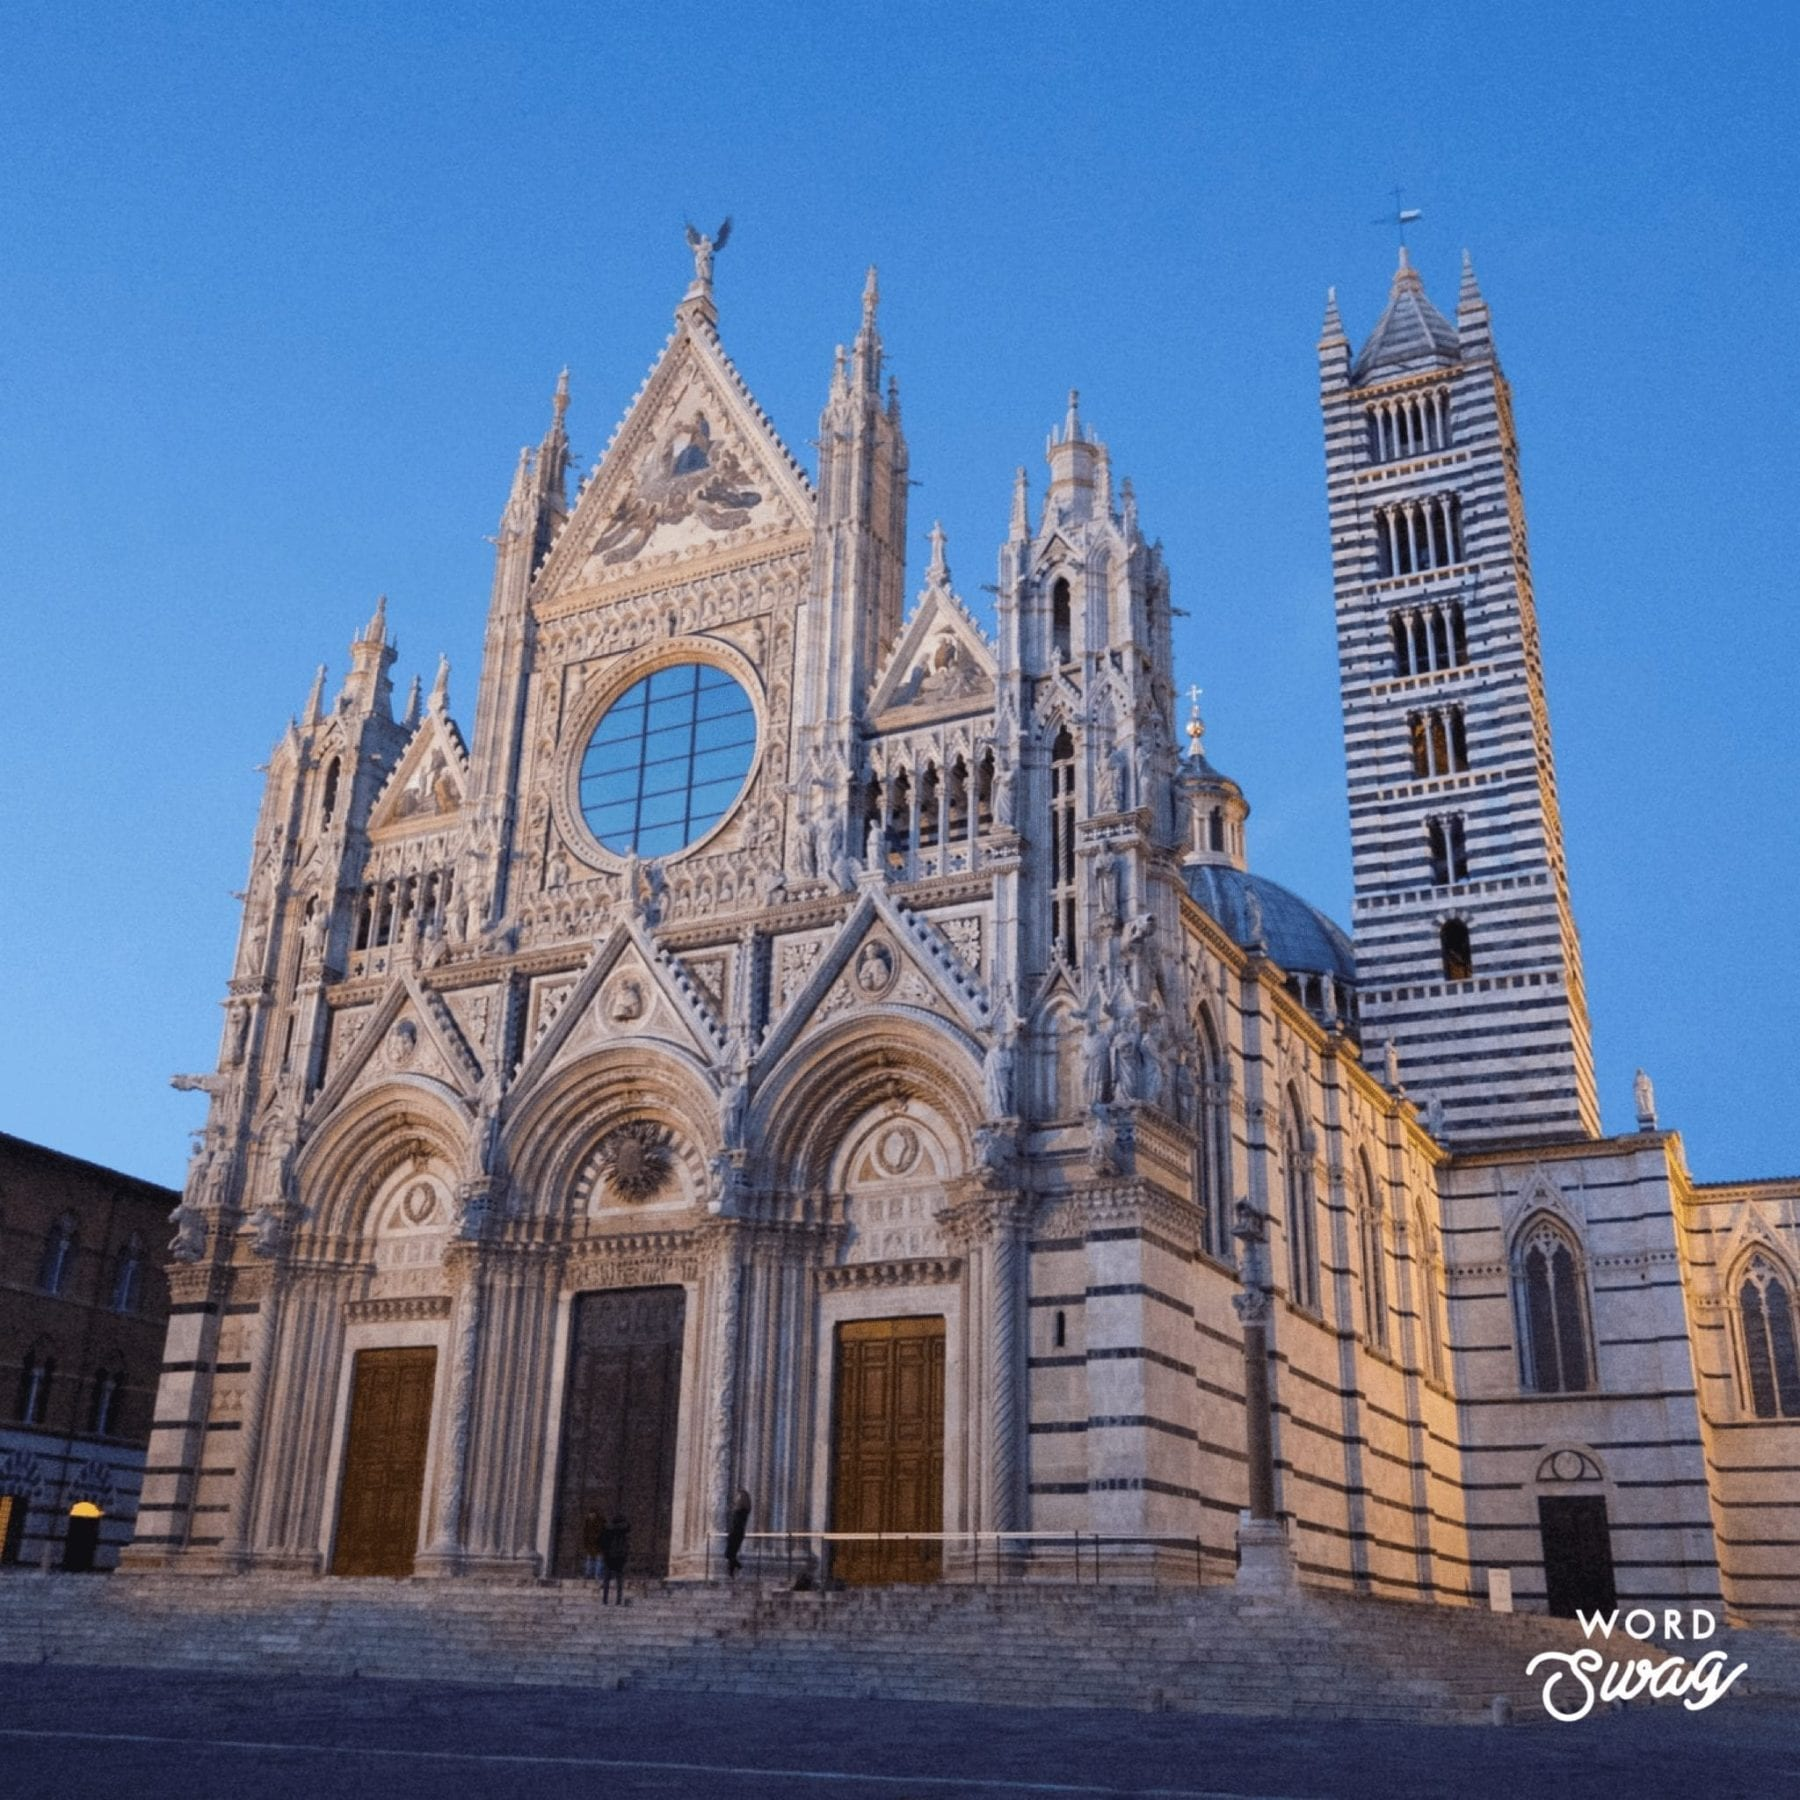 One Day in Siena Cathedral